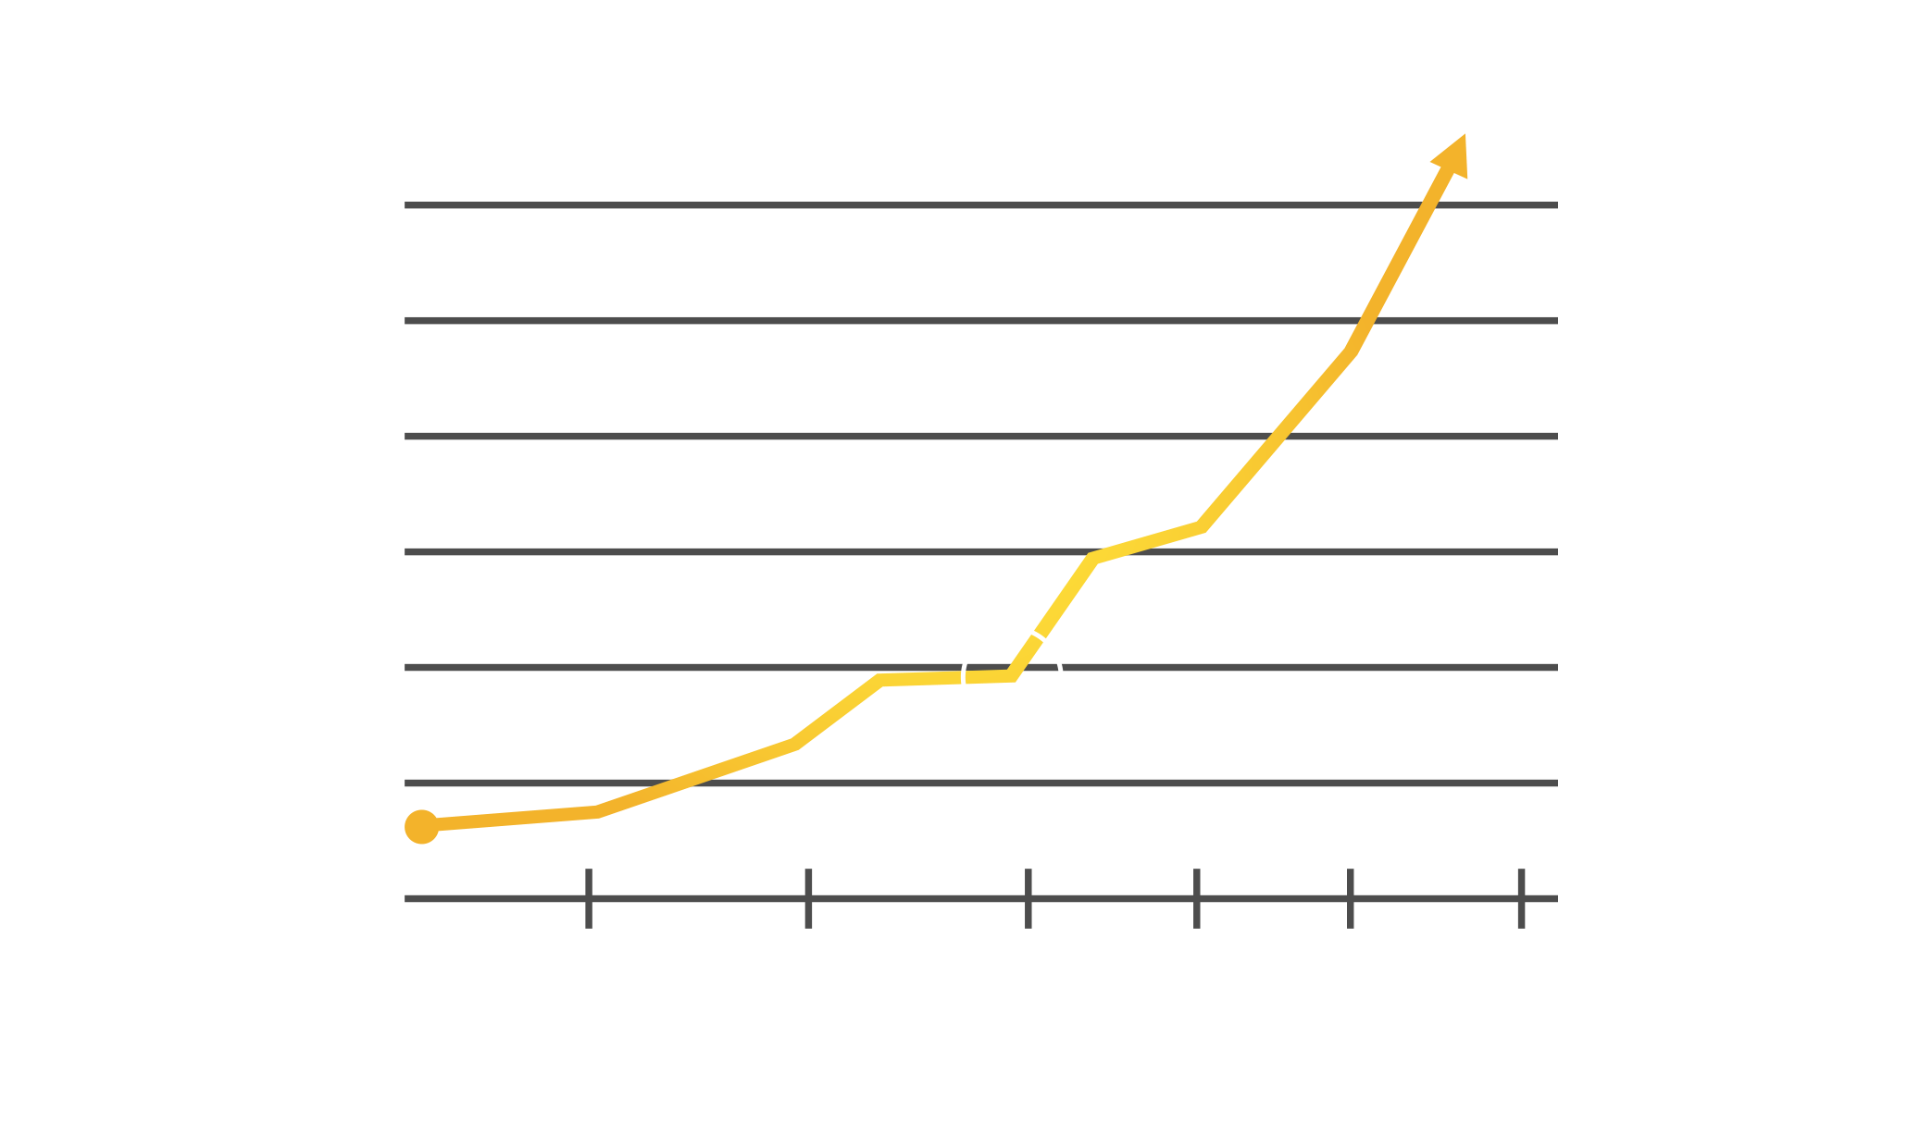 chart showing historical performance of truth series coins